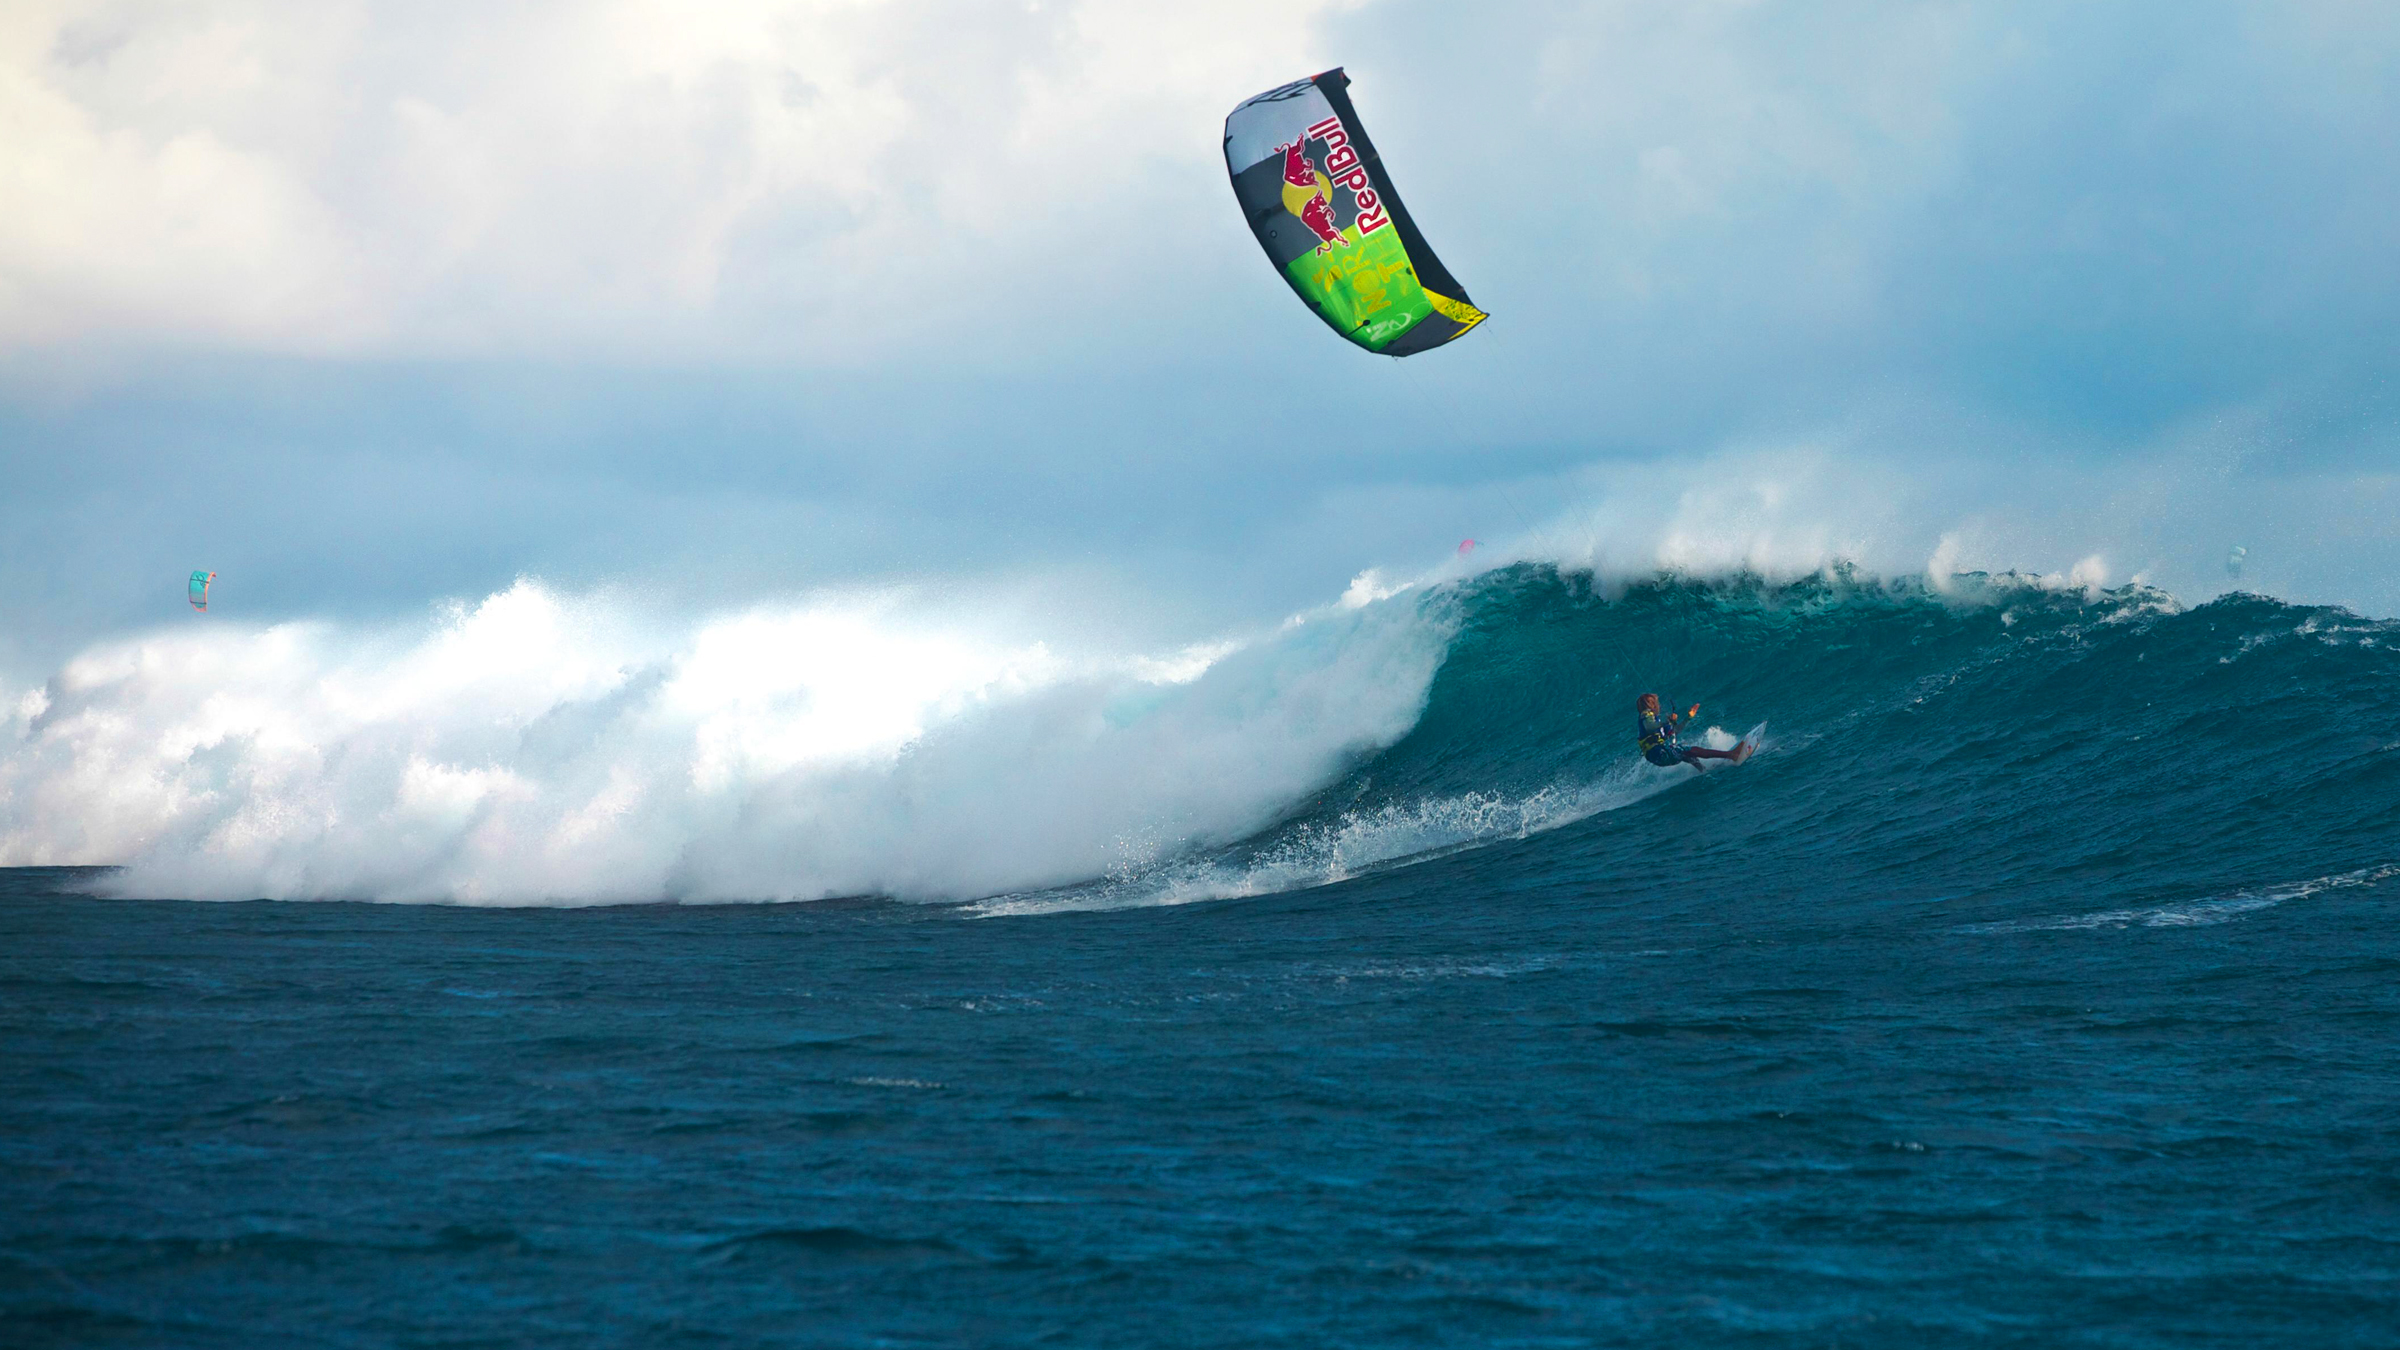 kitesurf wallpaper image - Airton Cozzolino loading up on a wave - in resolution: High Definition - HD 16:9 2400 X 1350